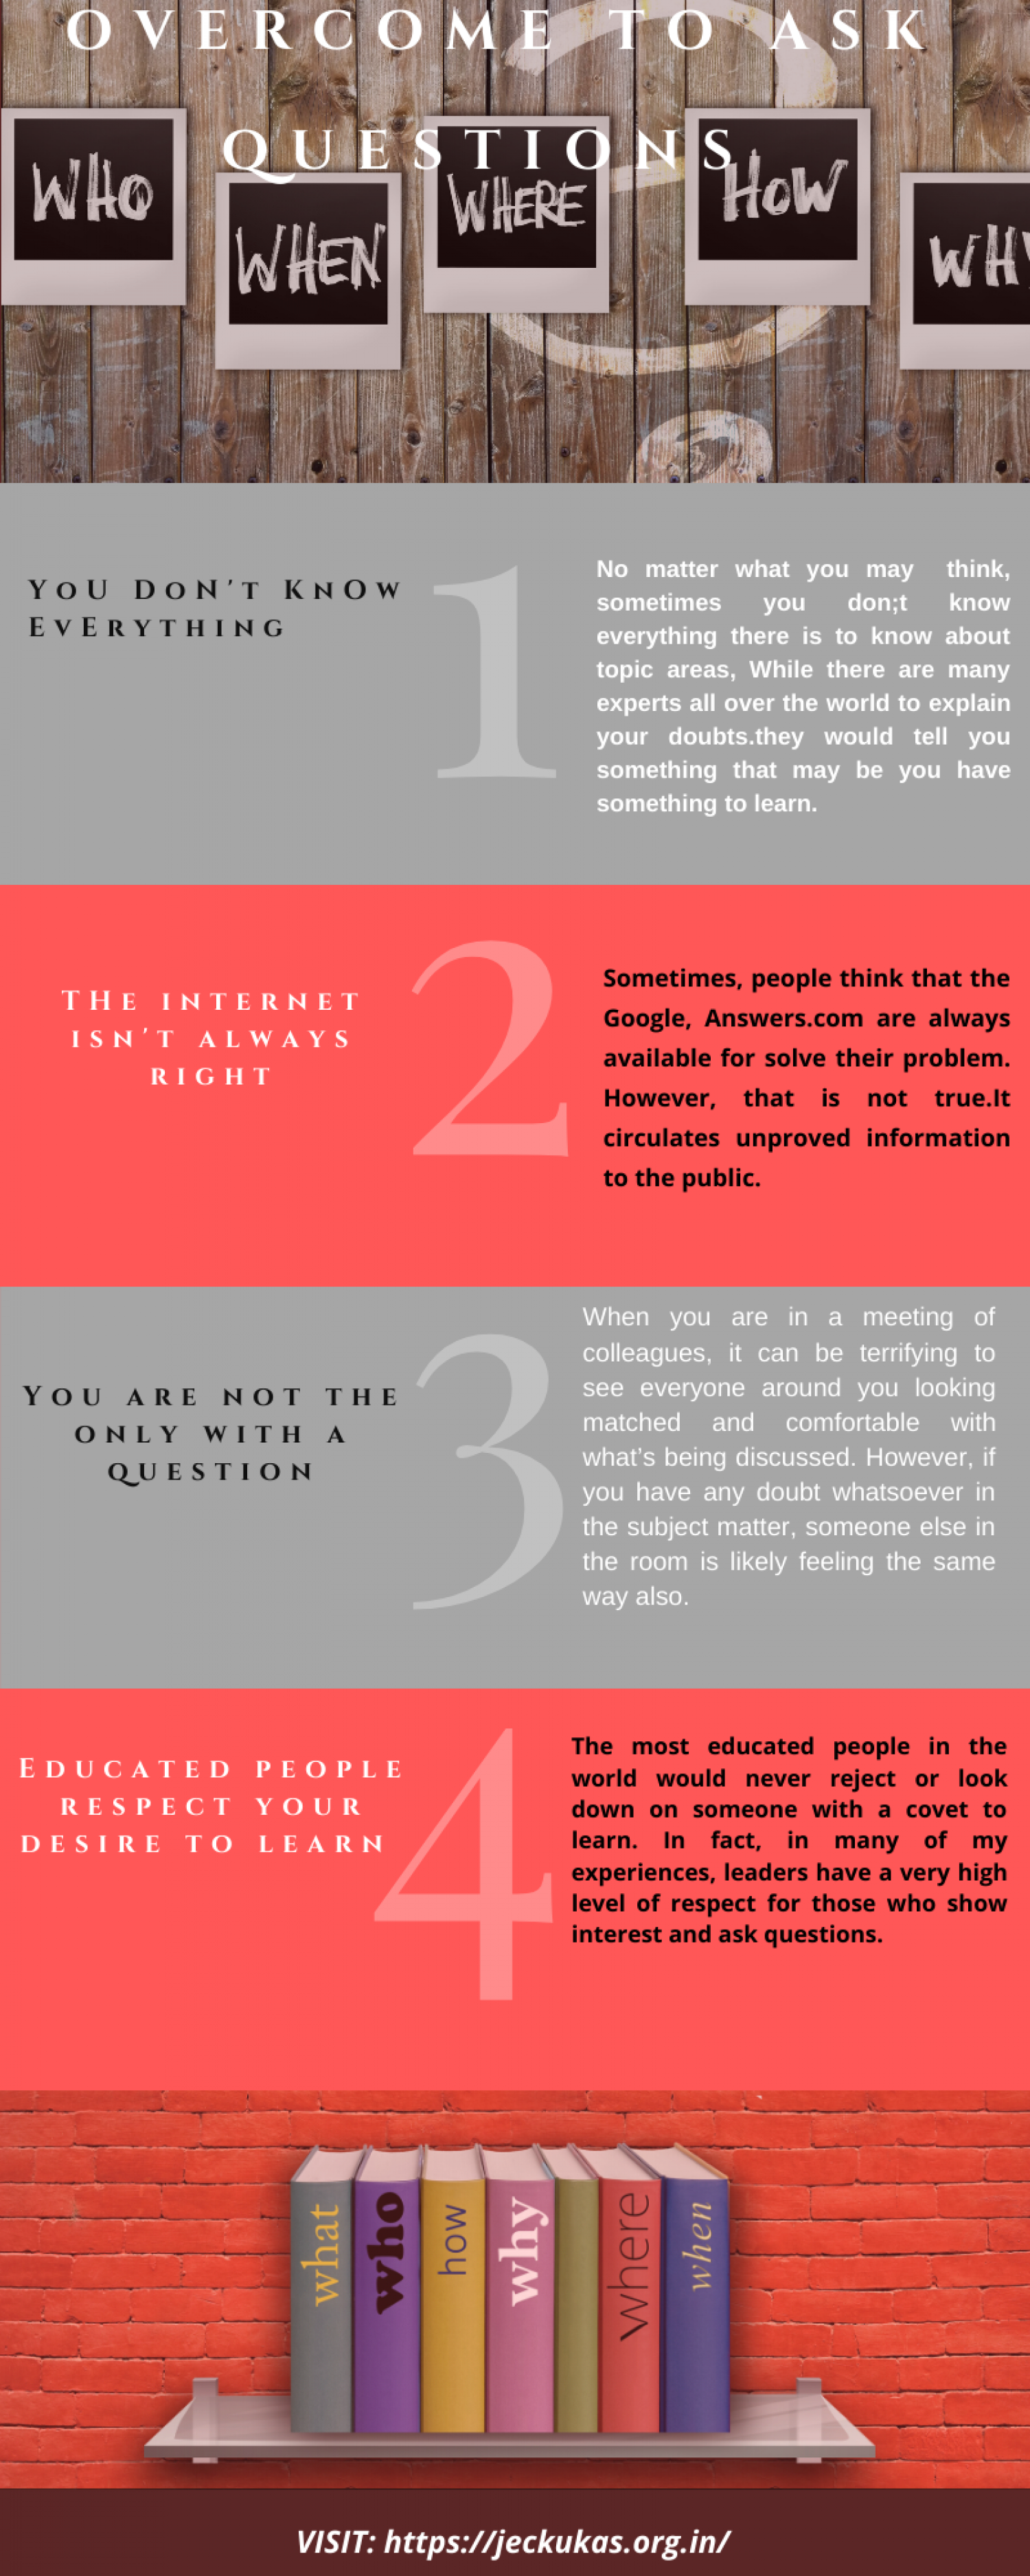 Overcome To Ask Questions Infographic